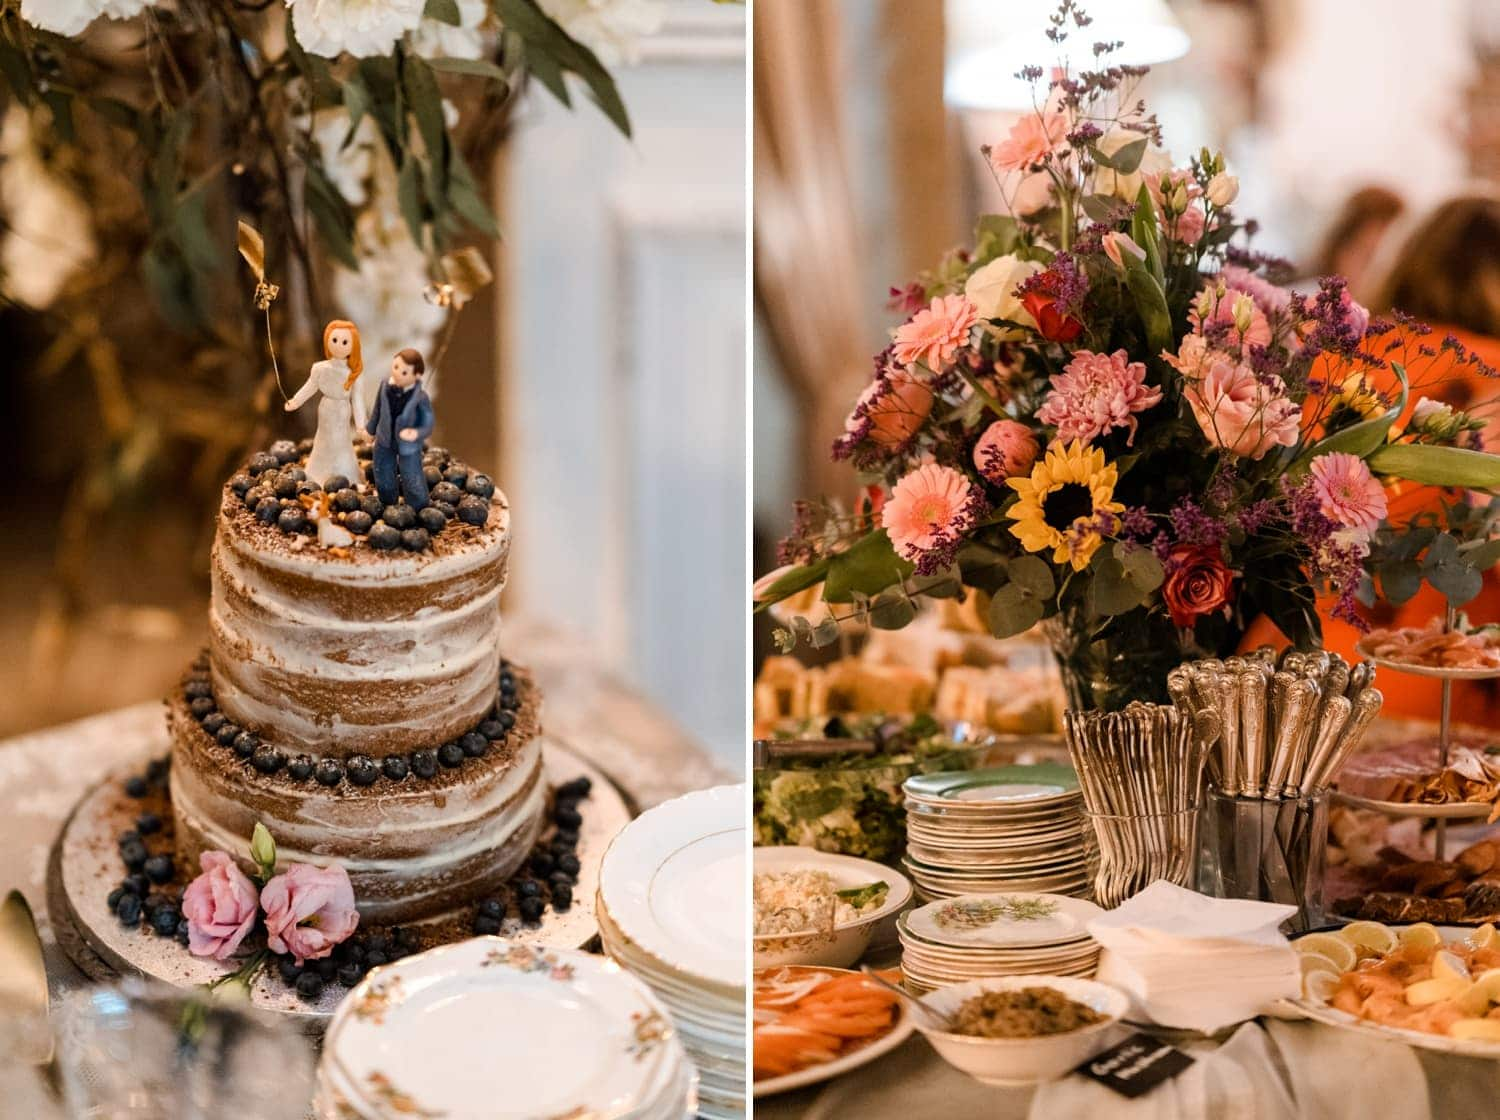 Wedding cake and buffet at Sunflower and I cafe in Cardiff Bay